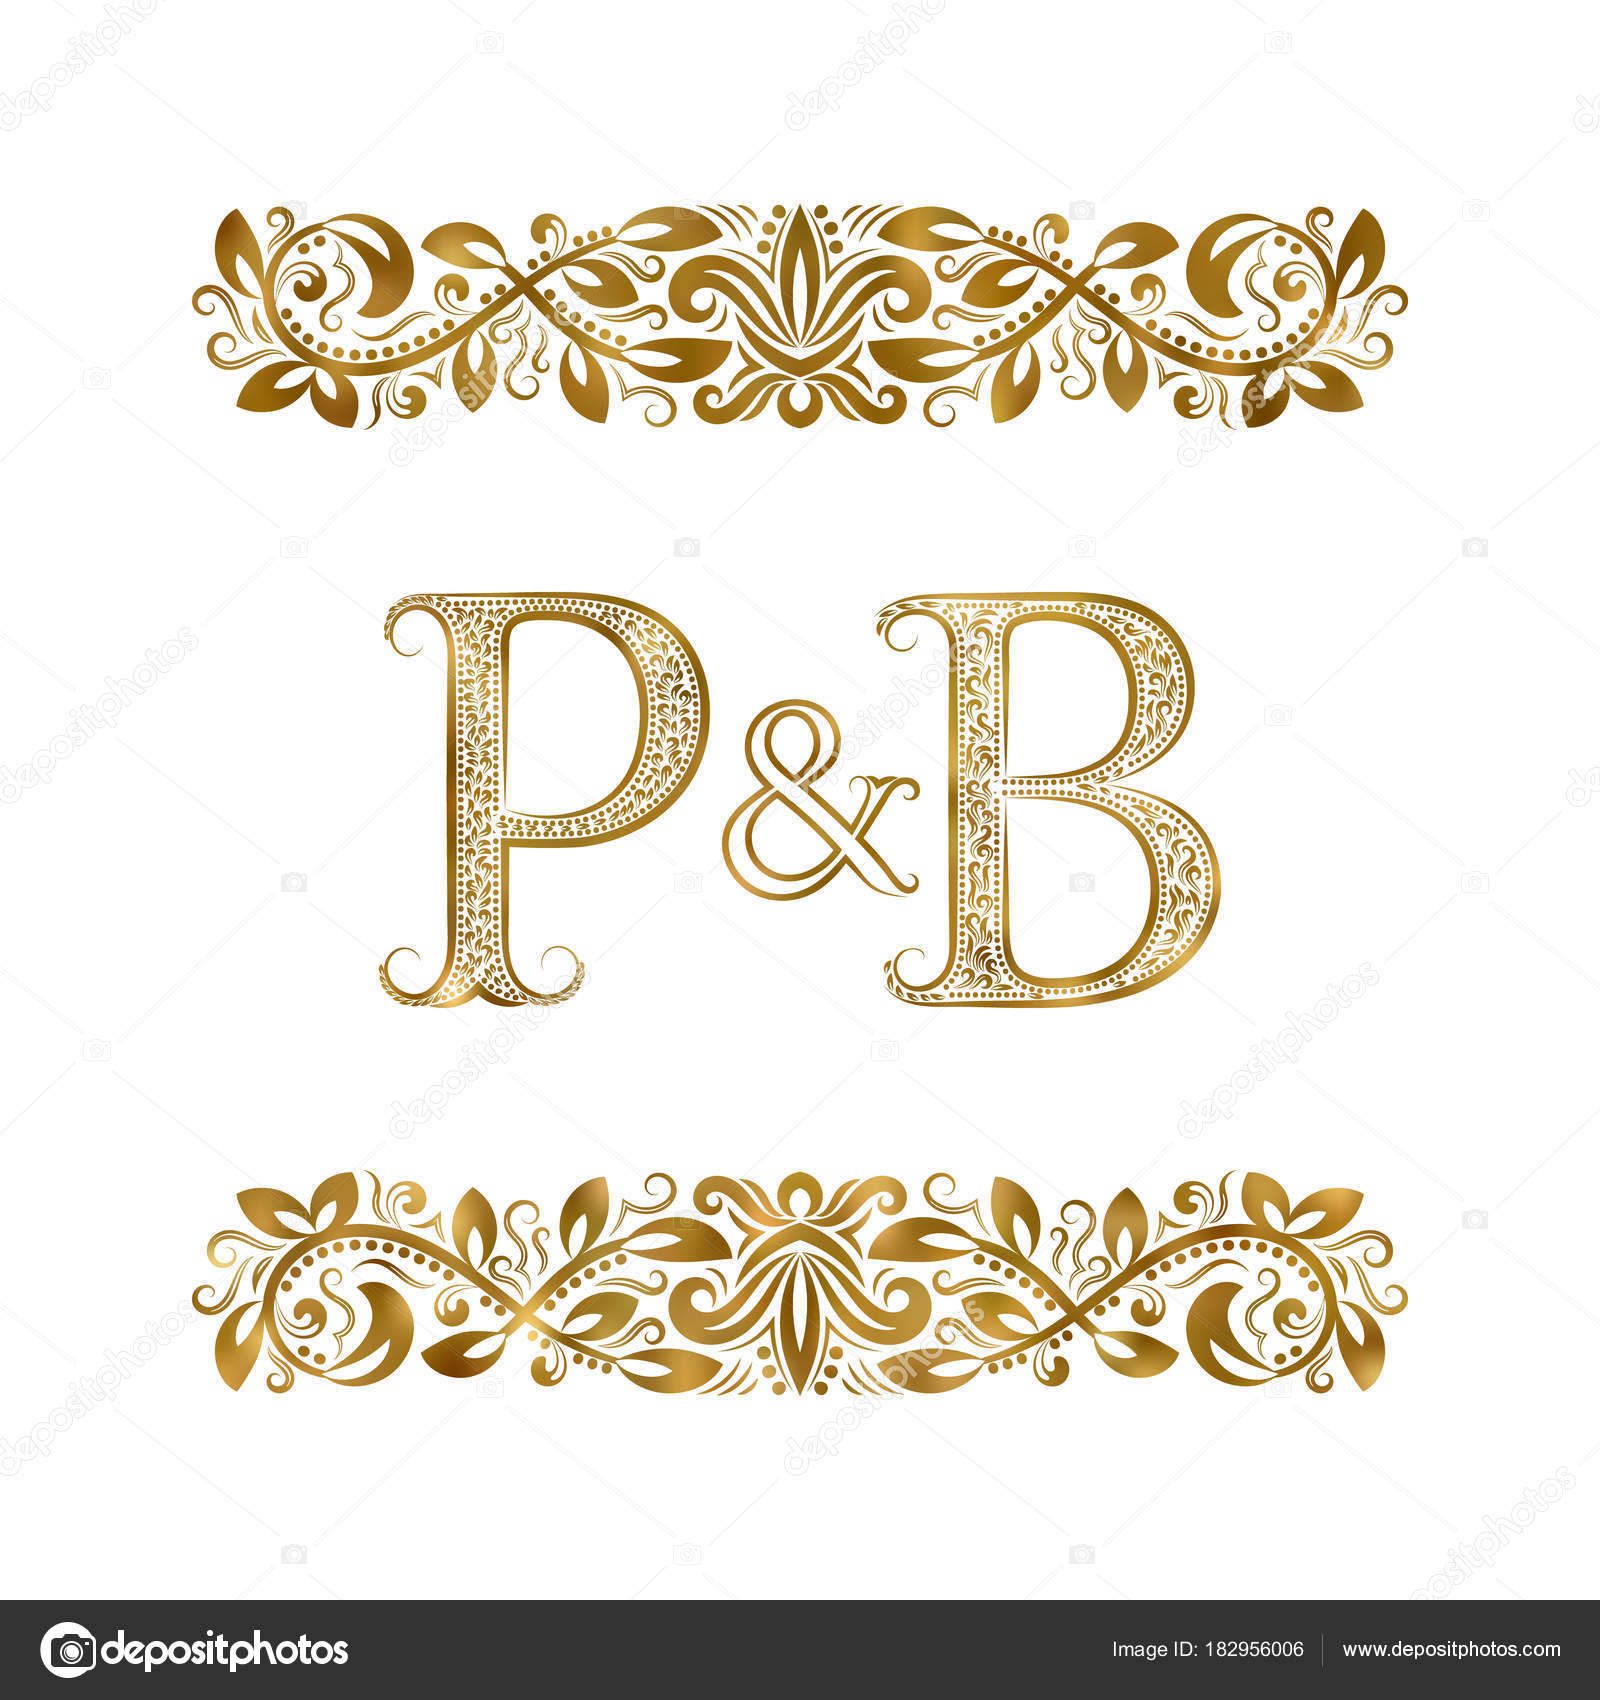 P And B Vintage Initials Logo Symbol The Letters Are Surrounded By Ornamental Elements Wedding Or Business Partners Monogram In Royal Style